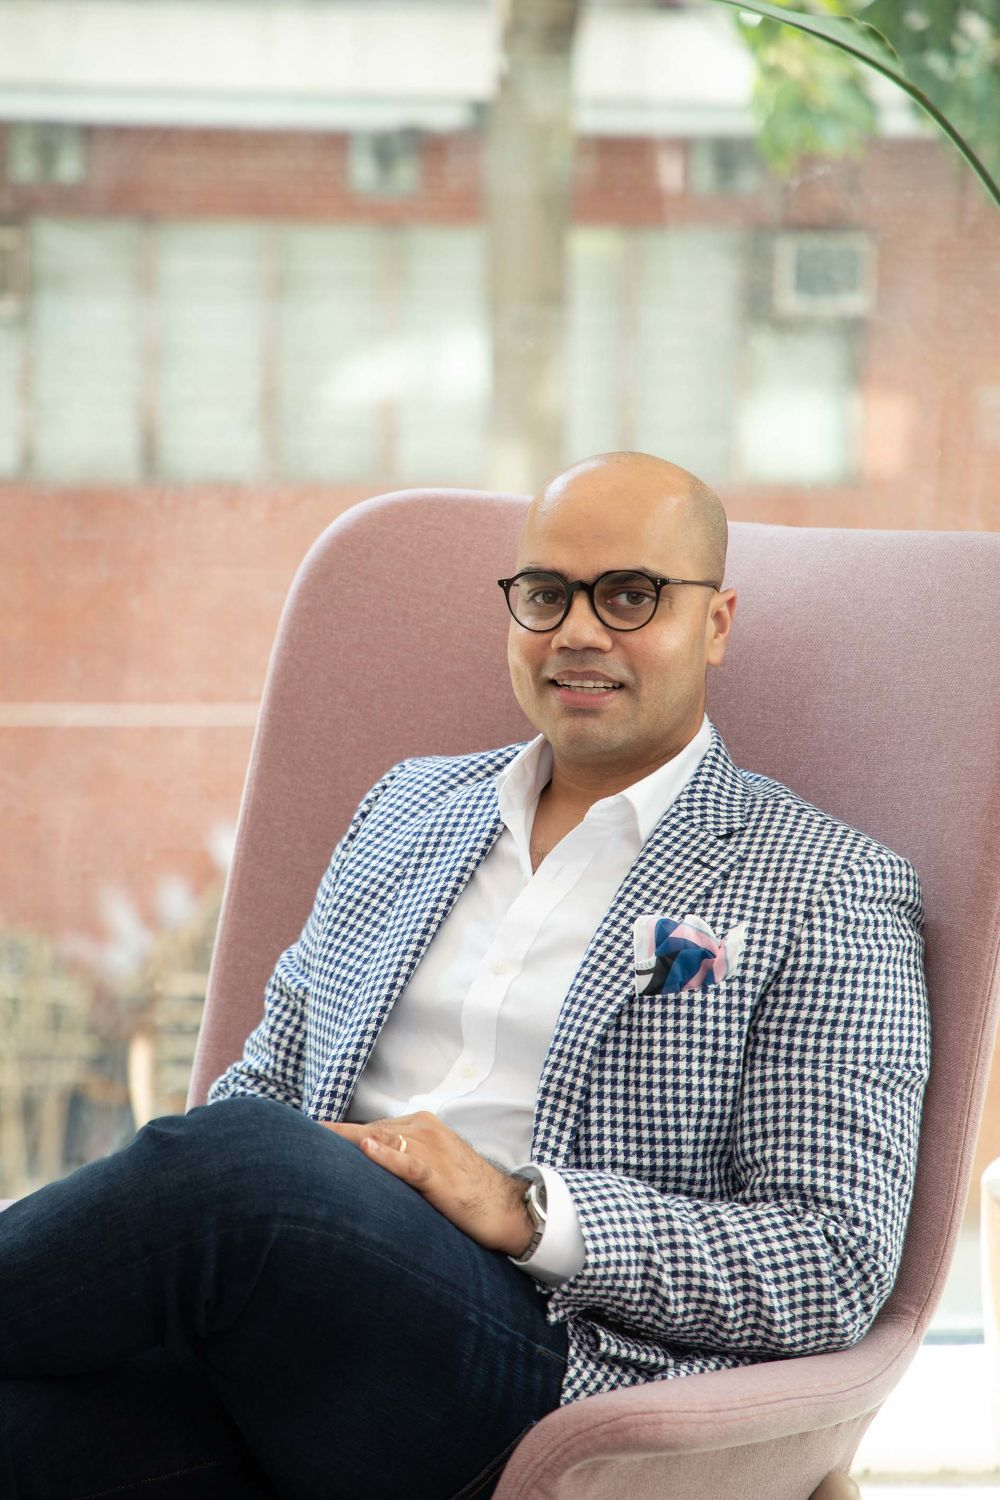 EDGEPROP SINGAPORE - Doshi: I believe Weave will provide a breath of fresh air to the rental market and co-living scene in Singapore (Photo: Weave Co-Living) - EDGEPROP SINGAPORE